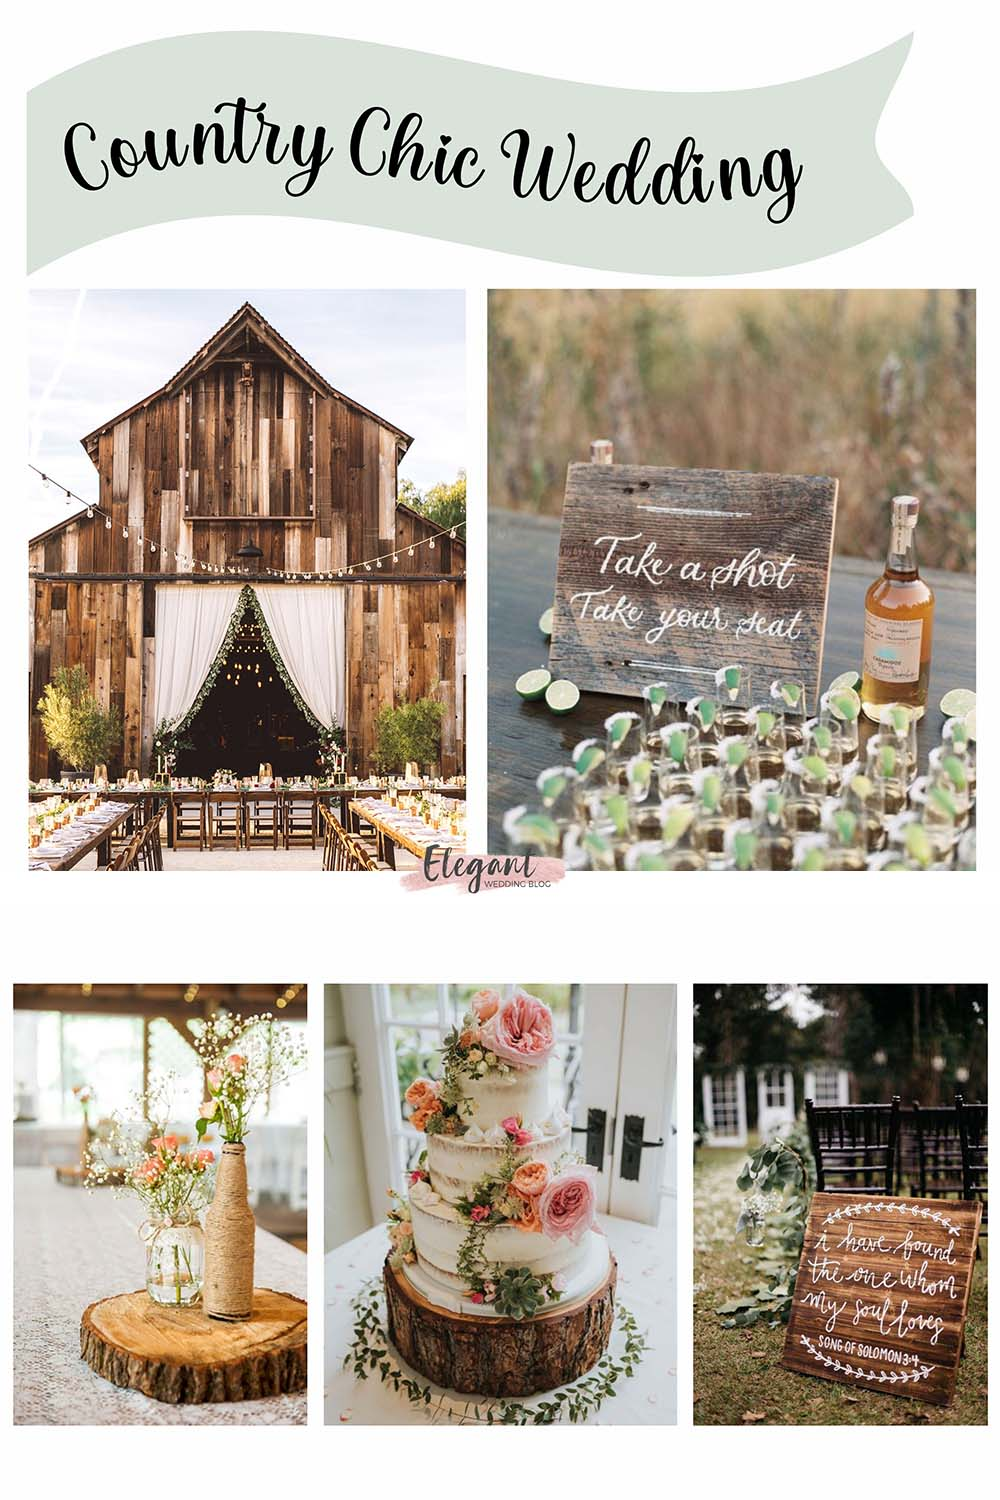 chic rustic country themed wedding ideas for wedding in any season